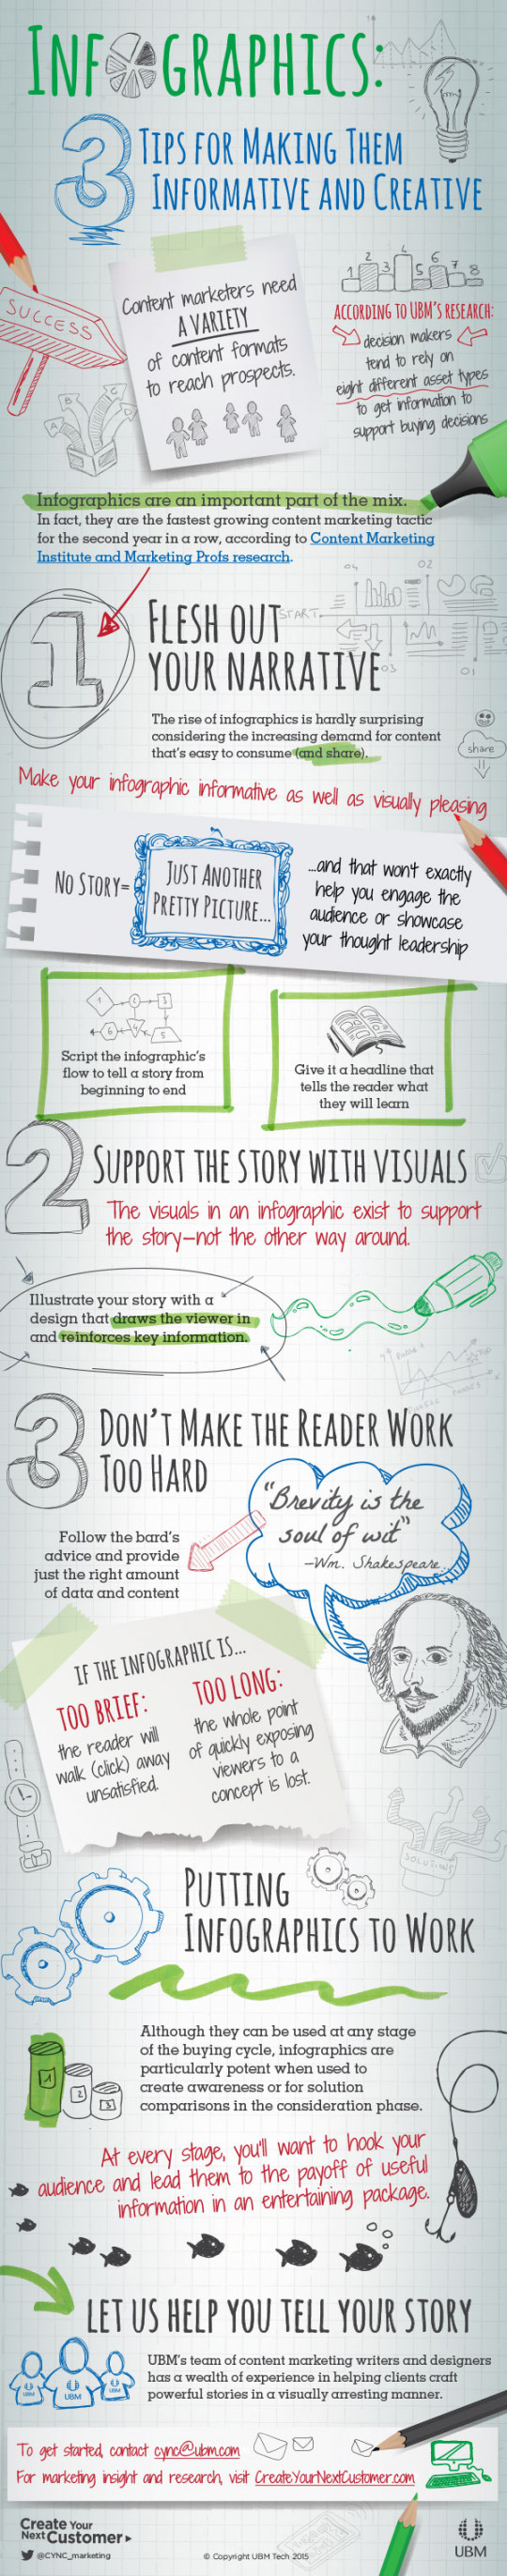 3 Tips For Making Infographics Informative & Creative